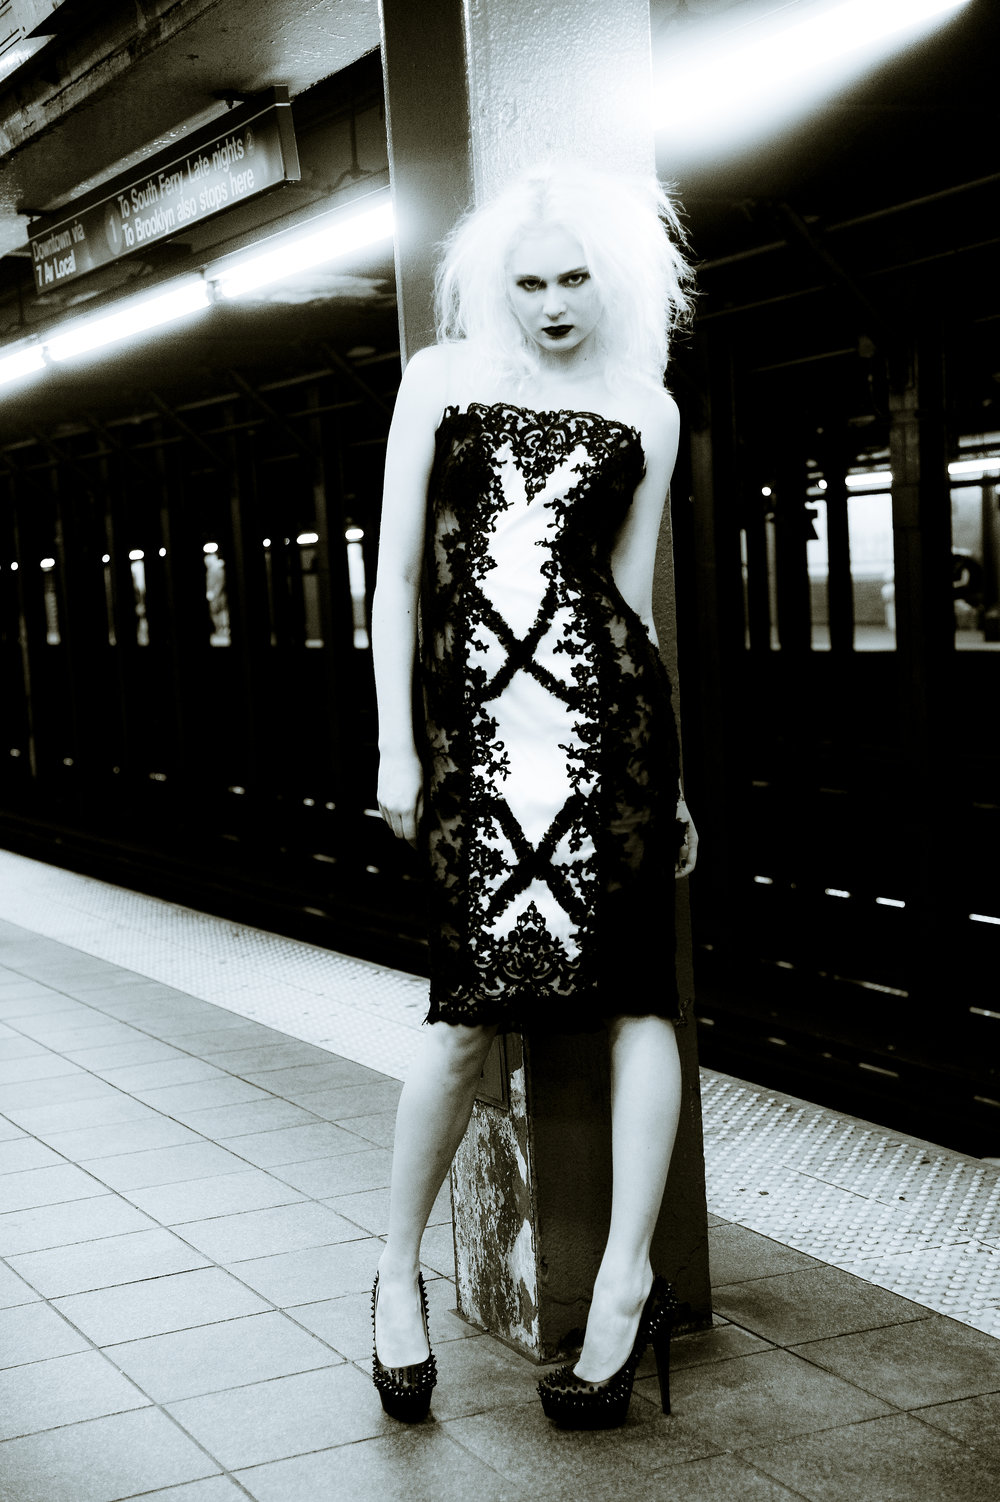 NY Subway Editorial